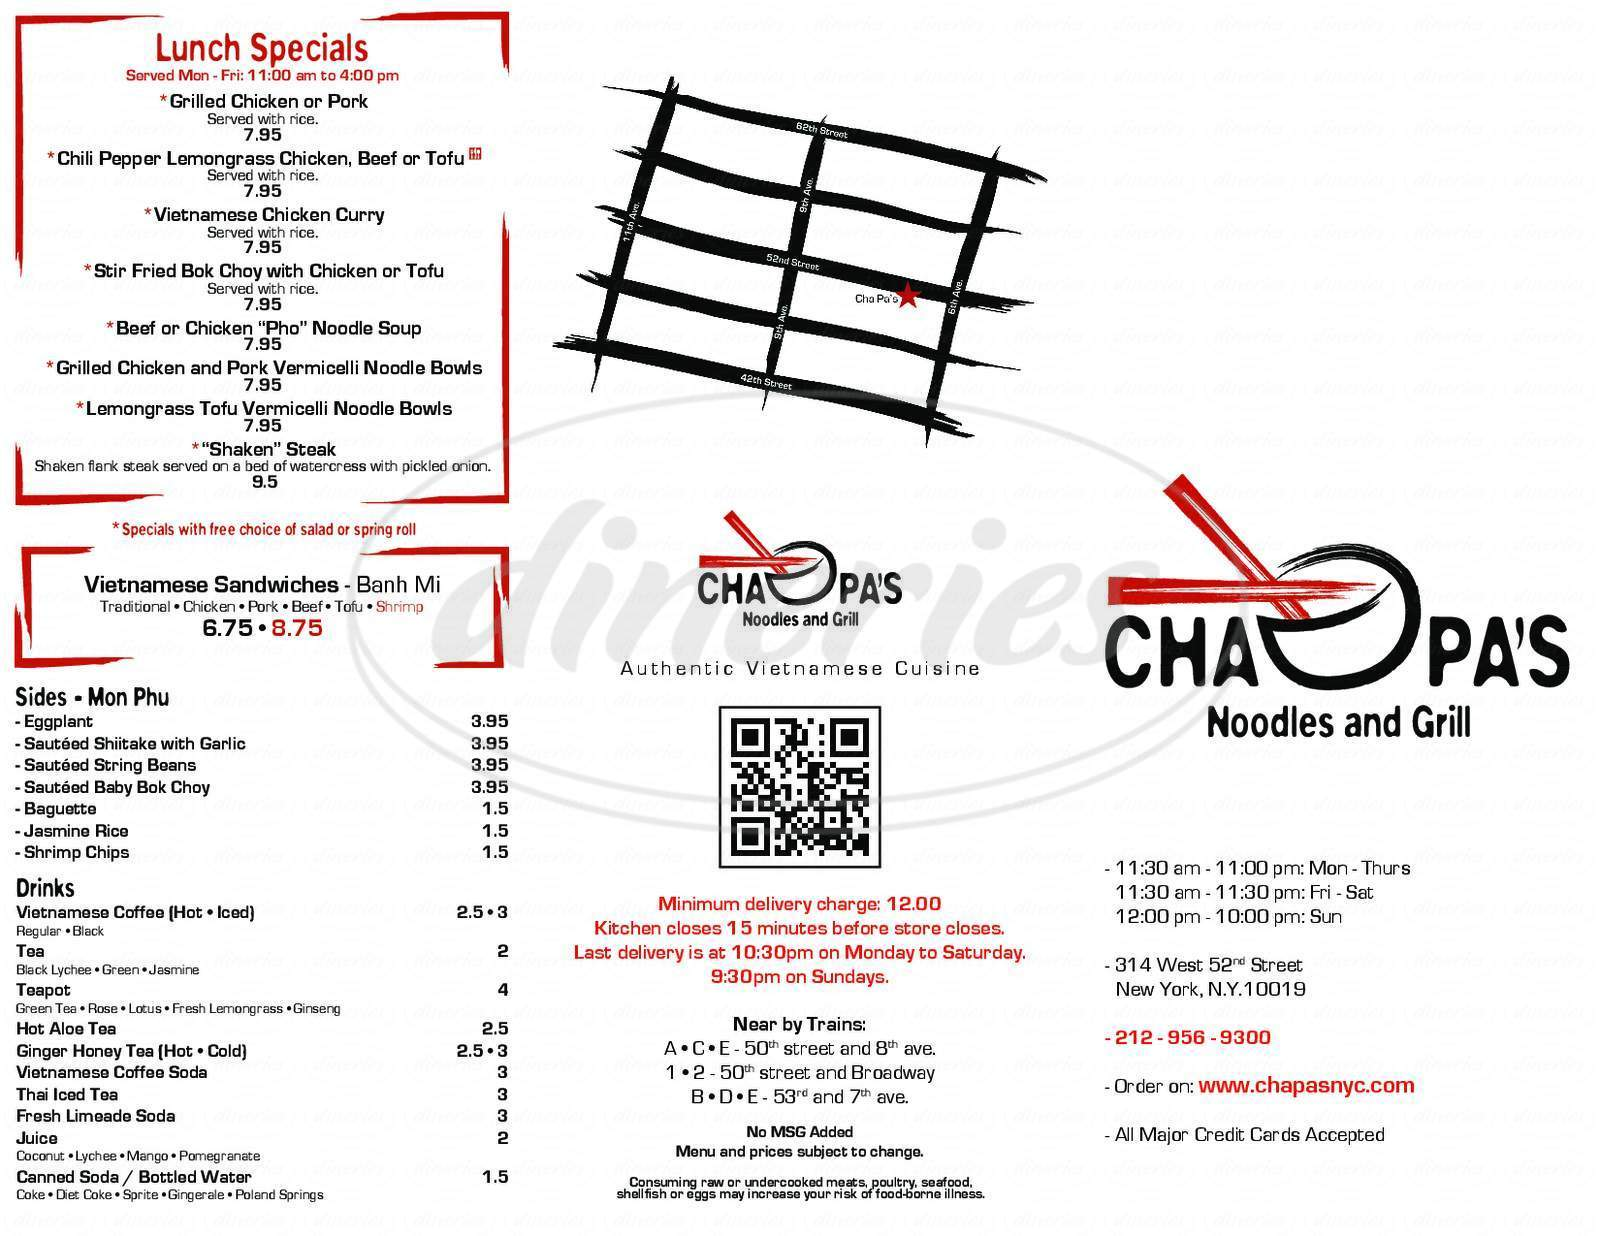 menu for Cha Pa's Noodles and Grill